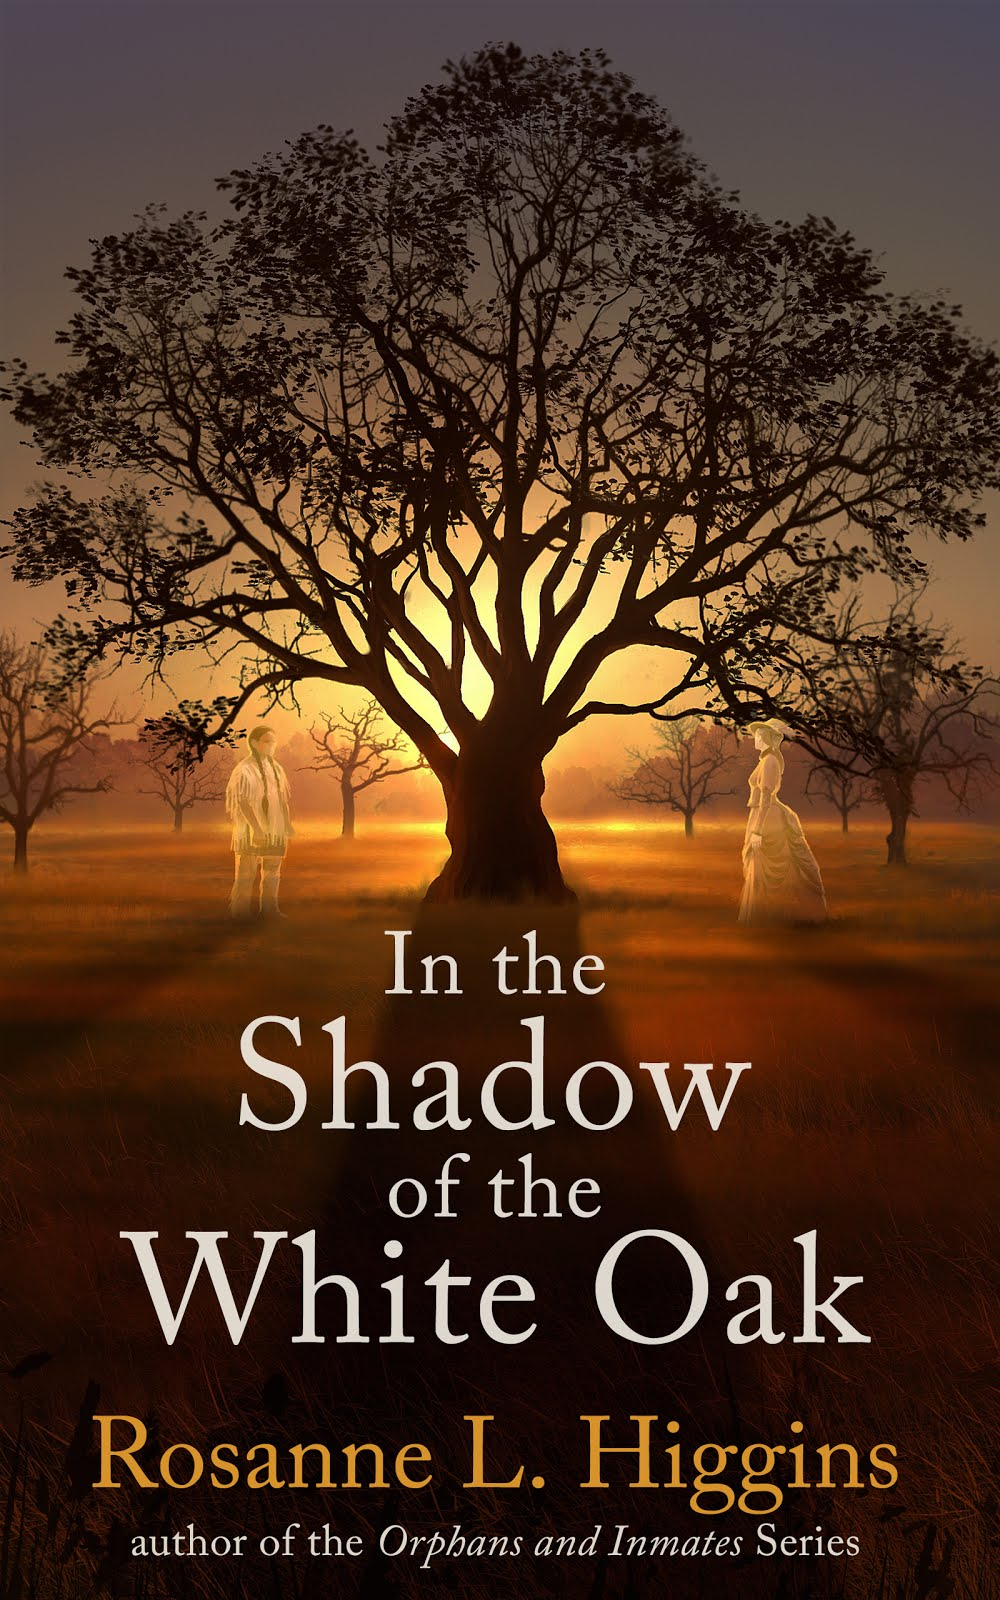 In the Shadow of the White Oak